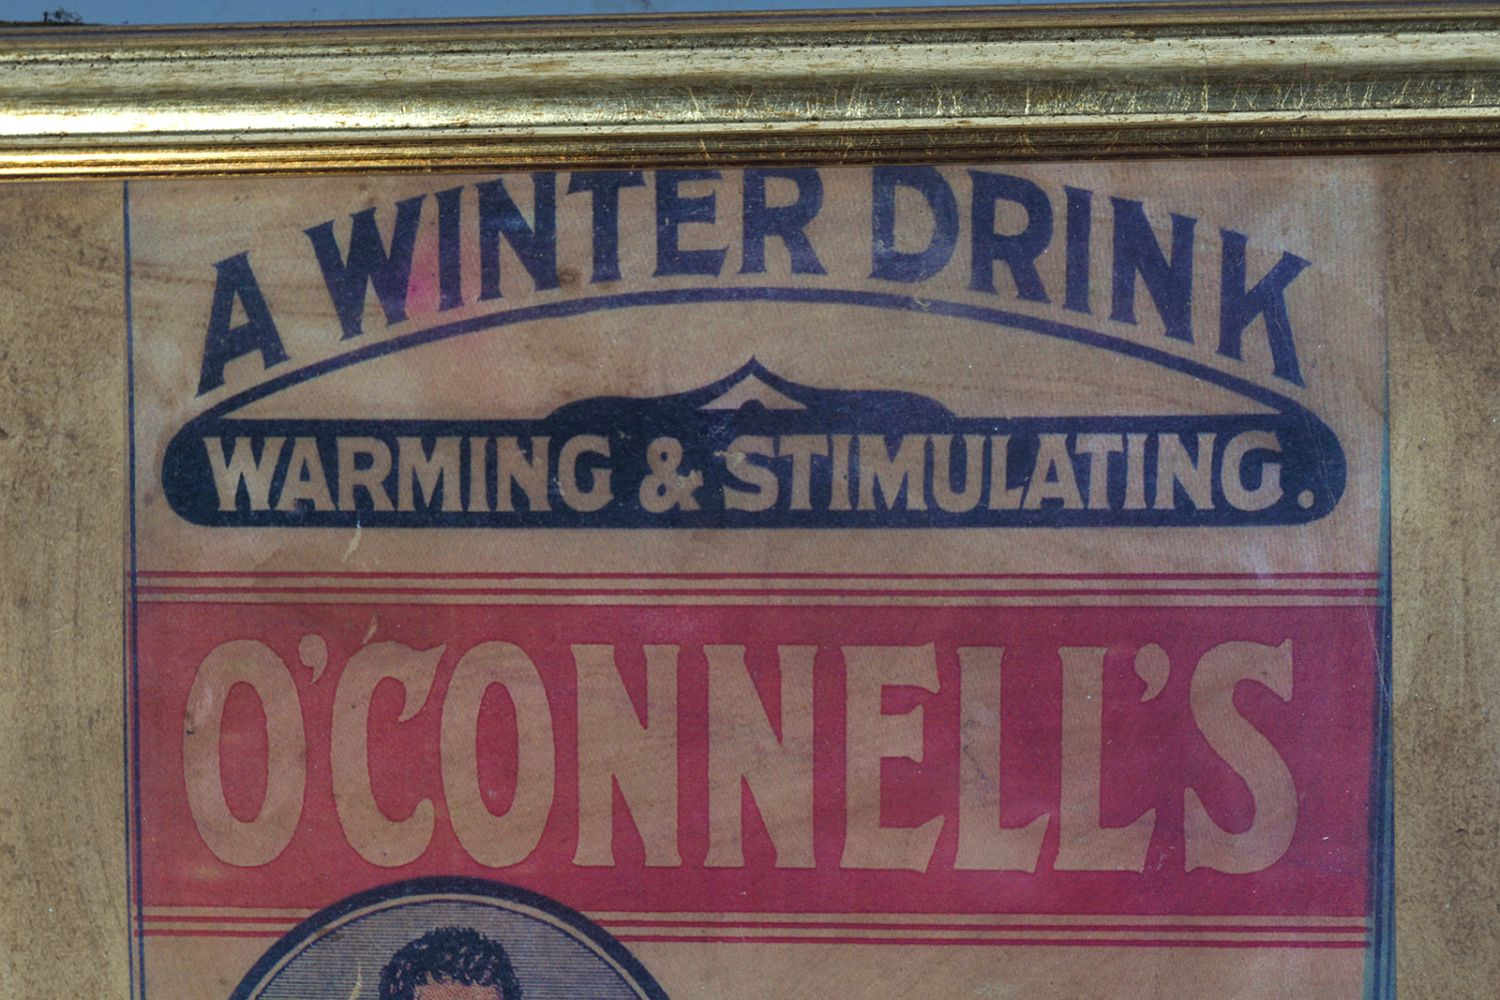 O'CONNELL'S NO.1 QUALITY ALE VINTAGE POSTER - Image 2 of 4